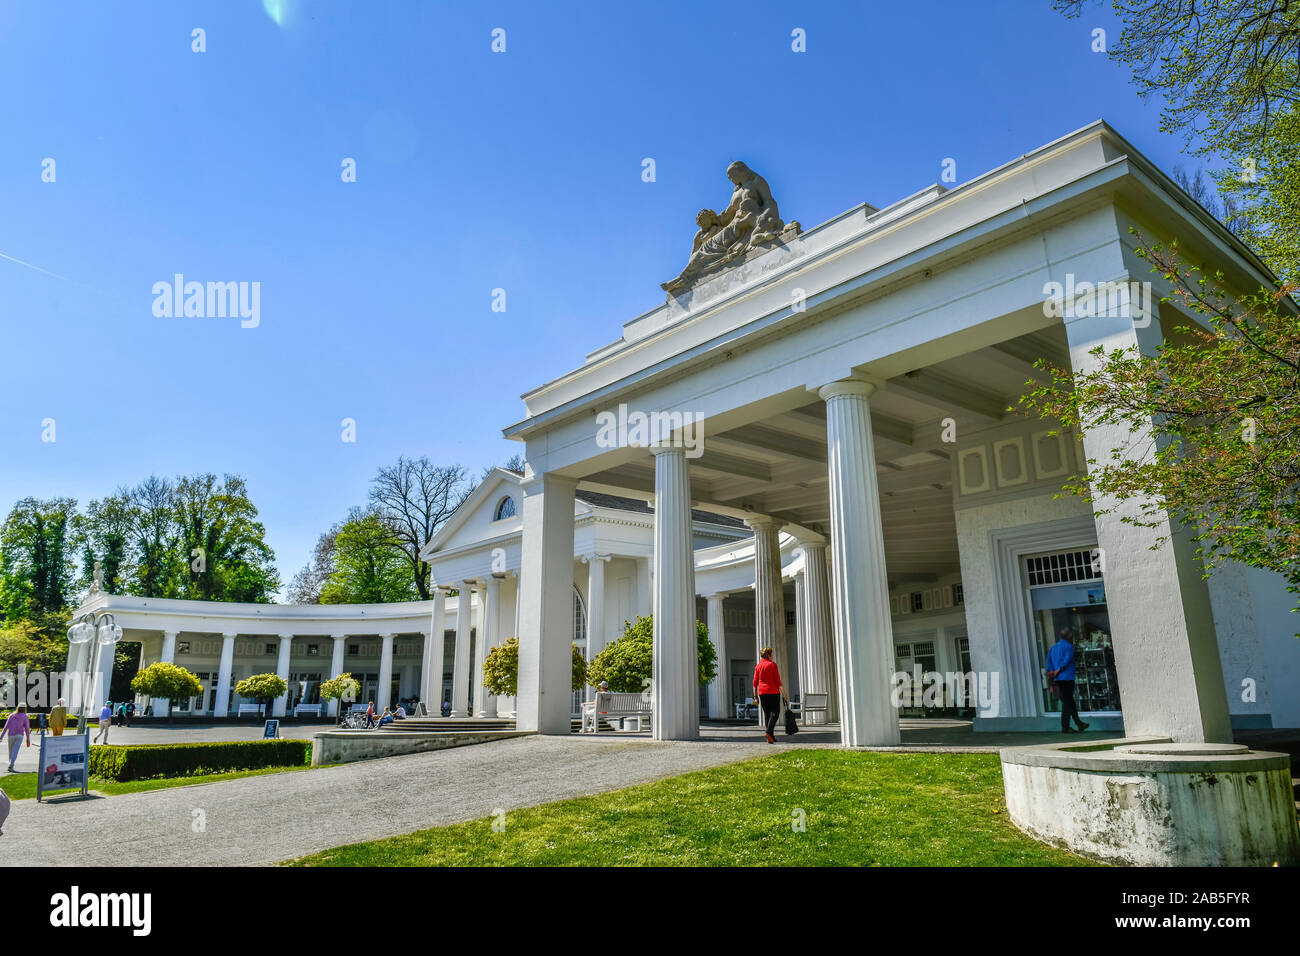 Wandelhalle, Kurpark, Bad Oeynhausen, Nordrhein-Westfalen, Deutschland Stock Photo